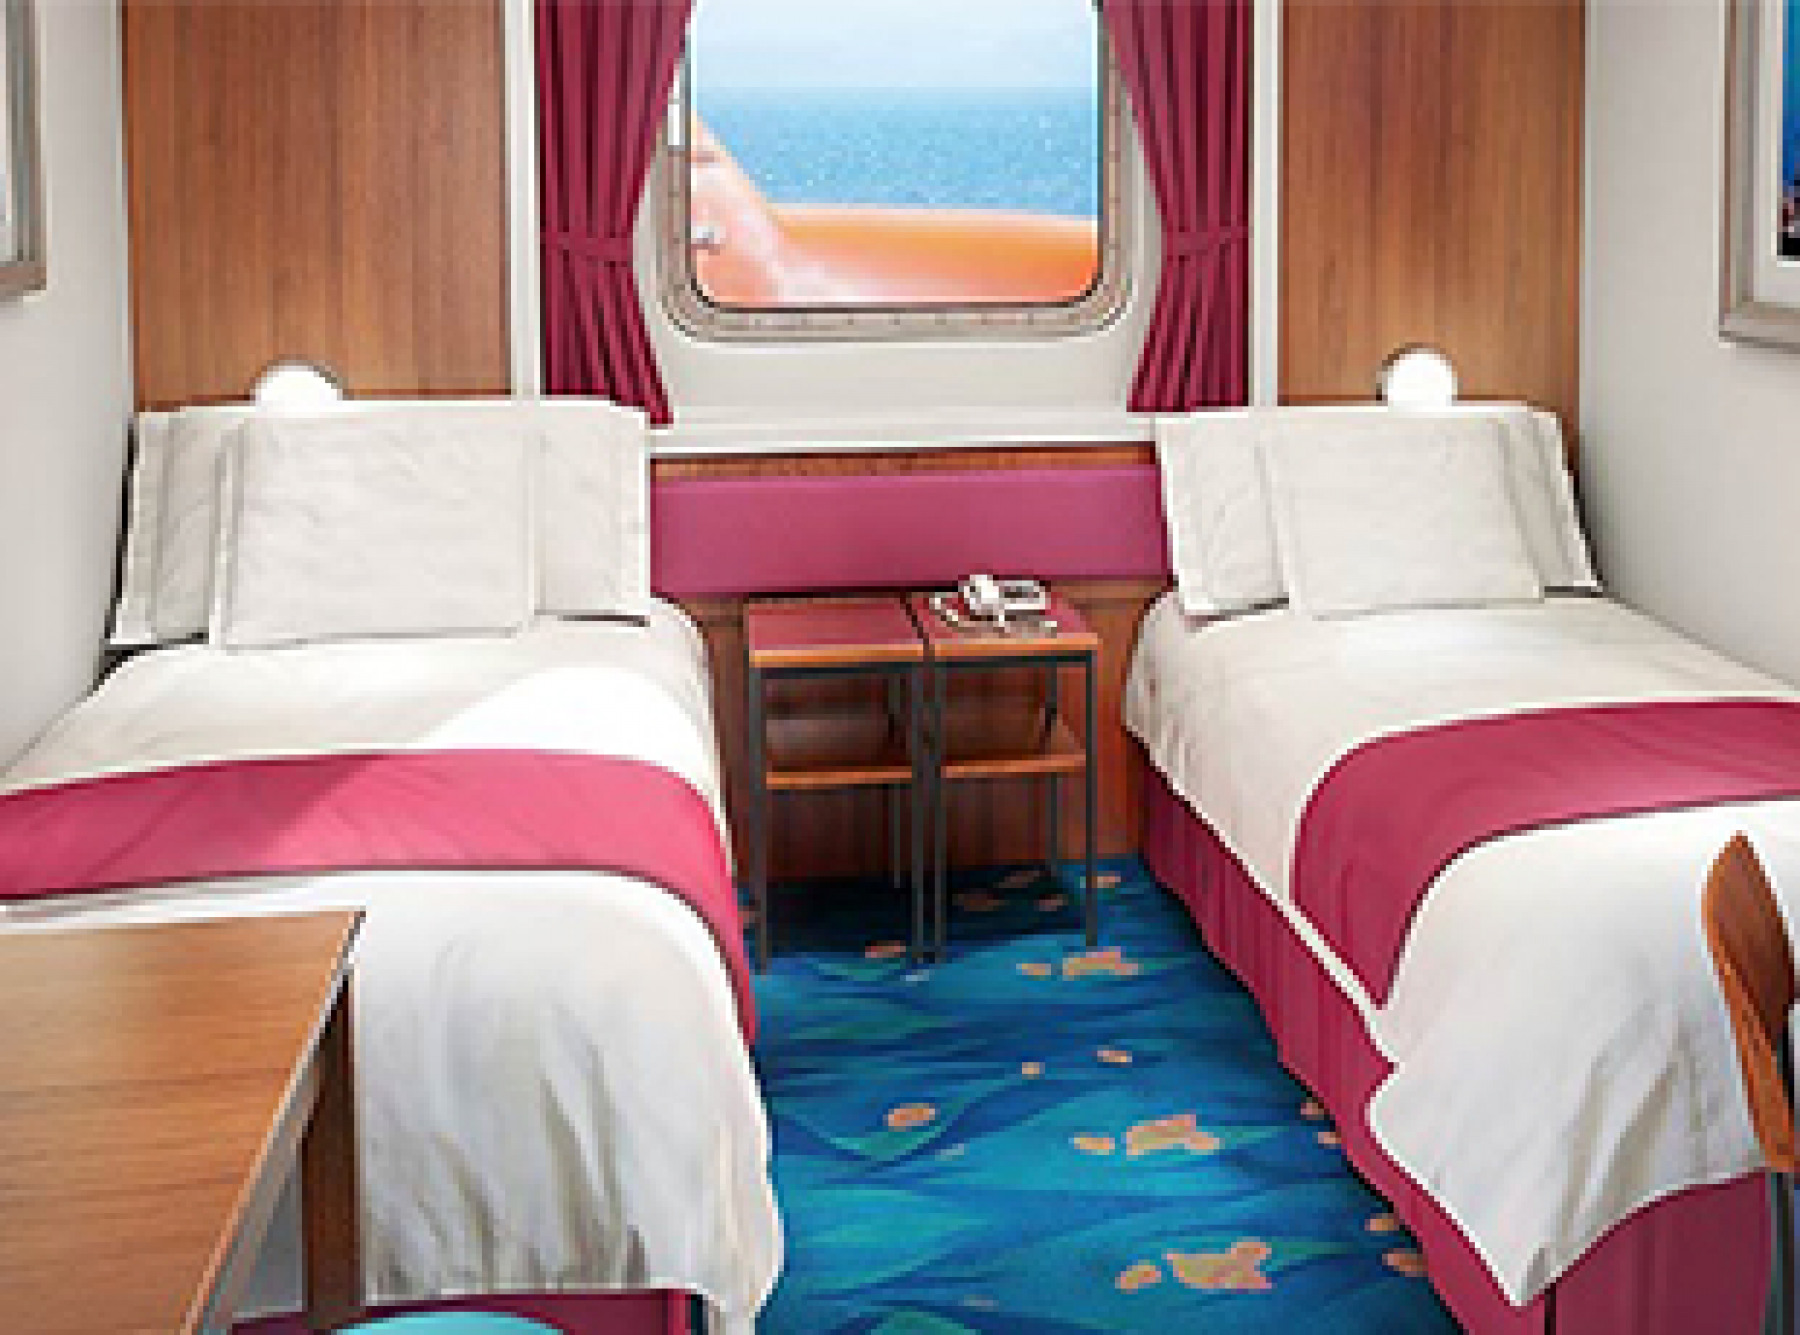 Norwegian Cruise Line Norwegian Jewel Accommodation Obstructed Oceanview.jpg